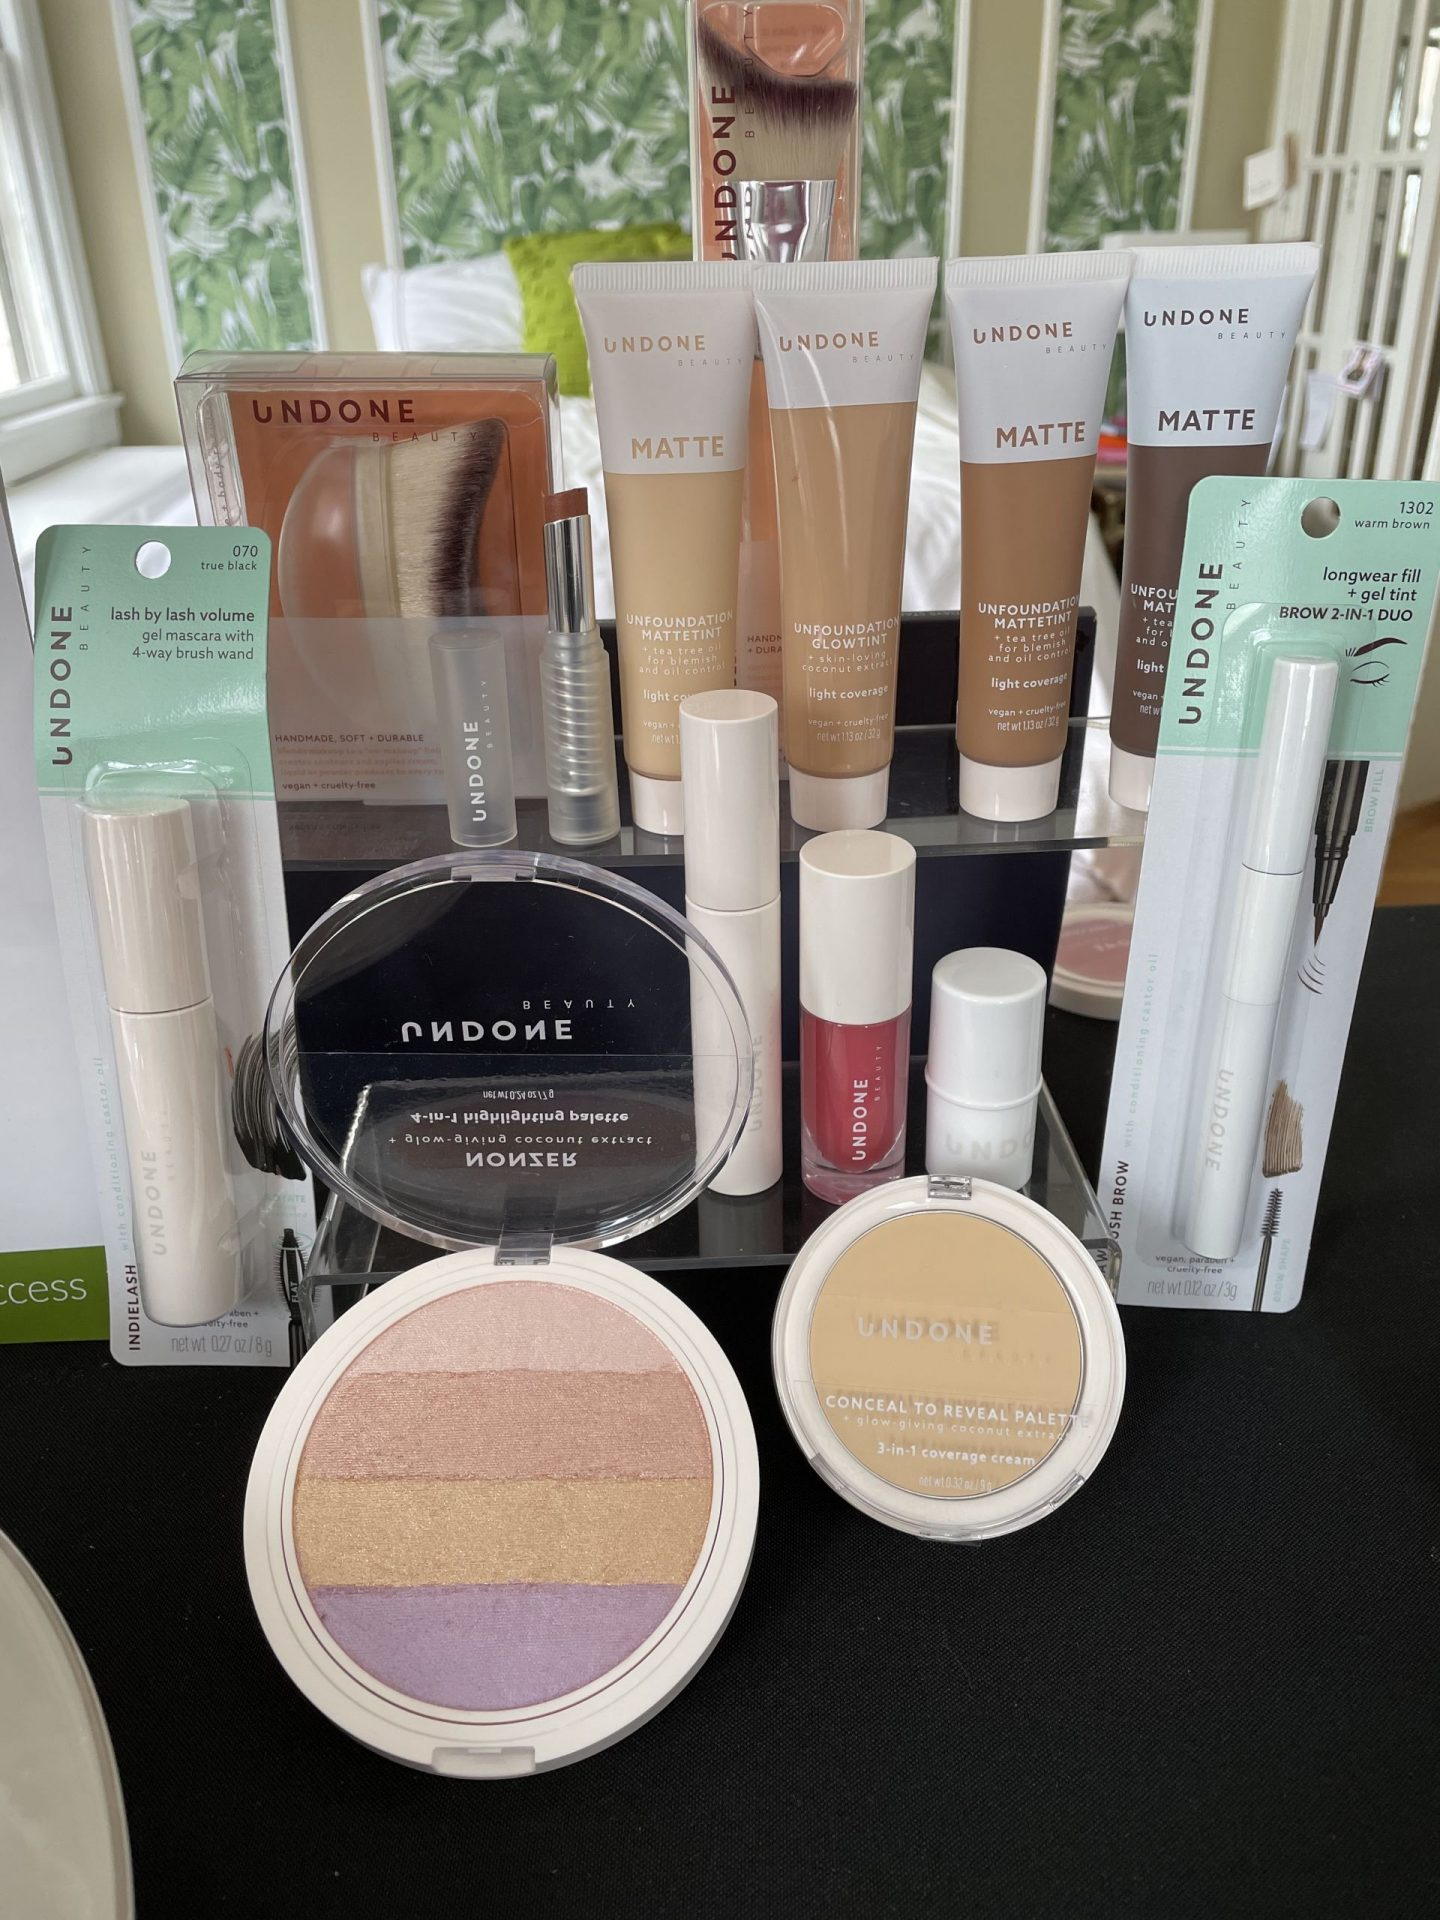 UnDone Beauty Makeup available at Target